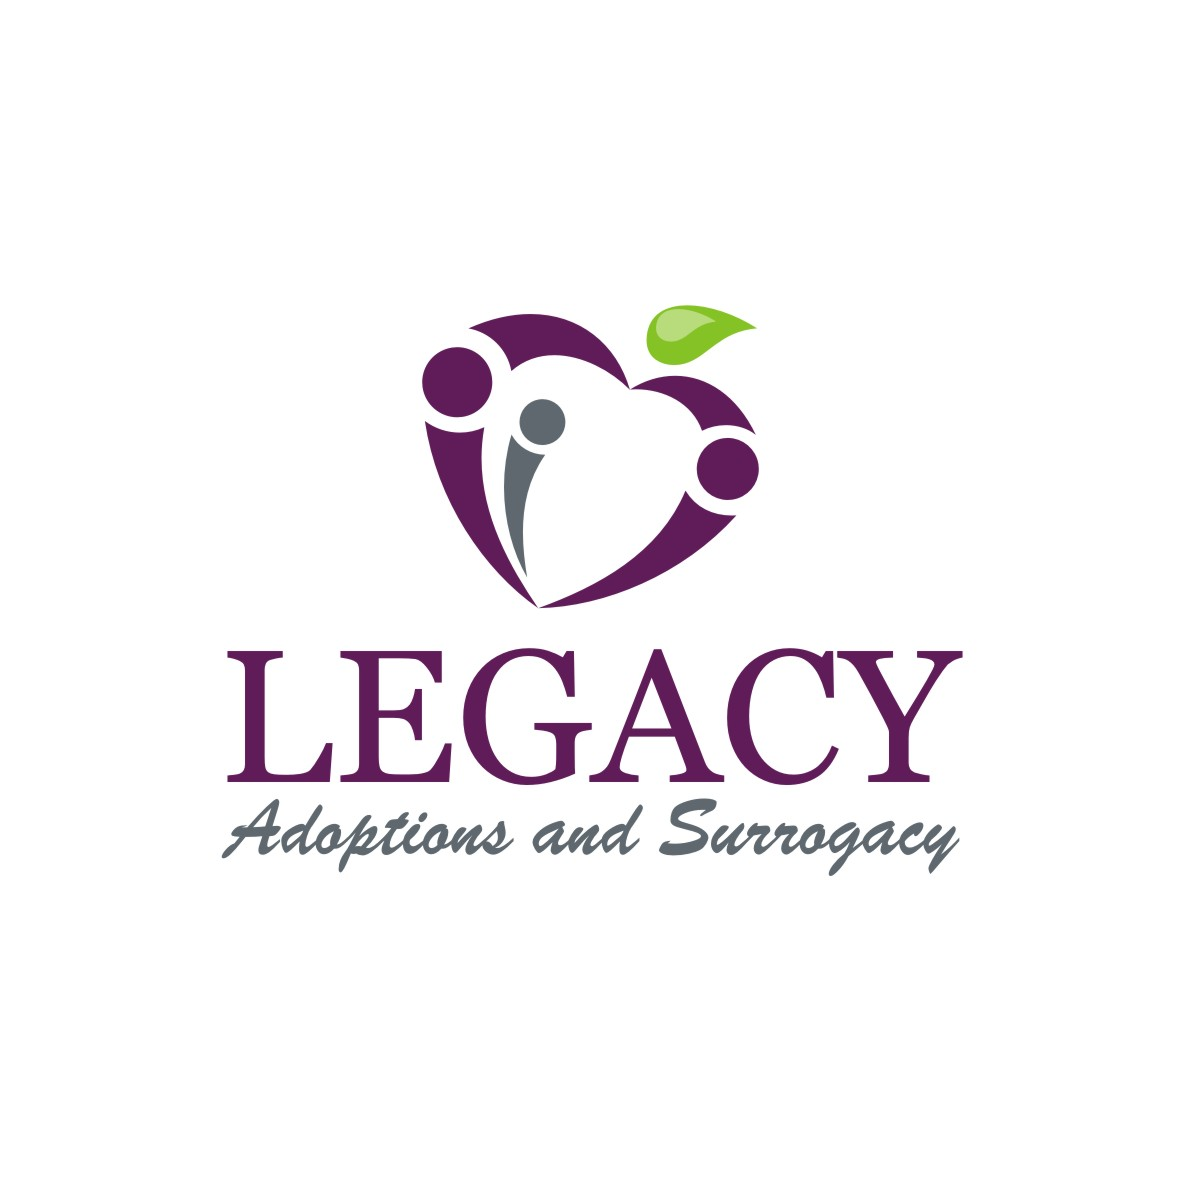 Logo Design by arteo_design - Entry No. 112 in the Logo Design Contest Legacy Adoptions and Surrogacy Logo Design.